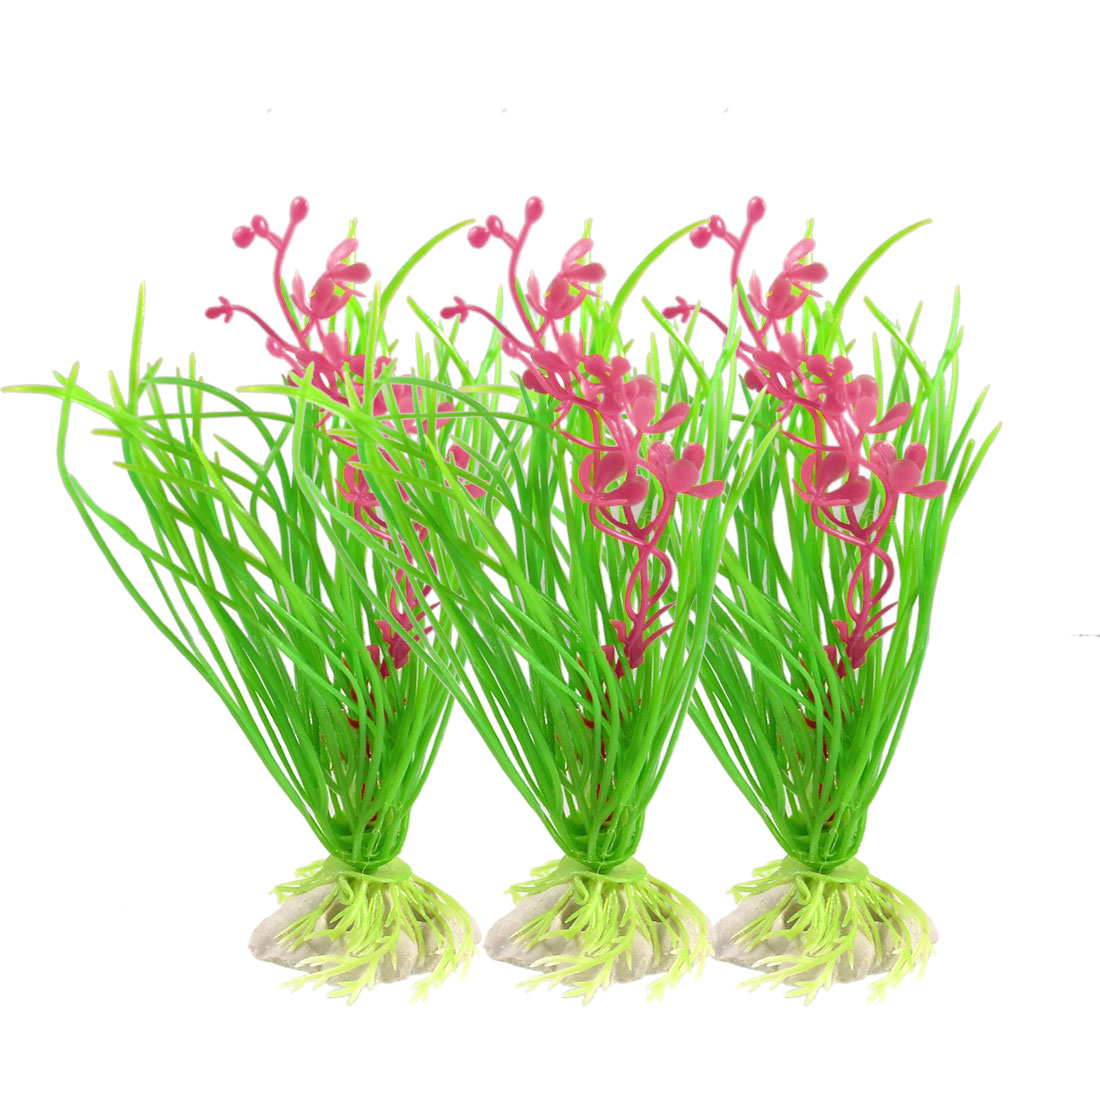 "3 Pcs Green Leaf Red Flower Artificial Plastic Aquatic Grass 4.7"" High"